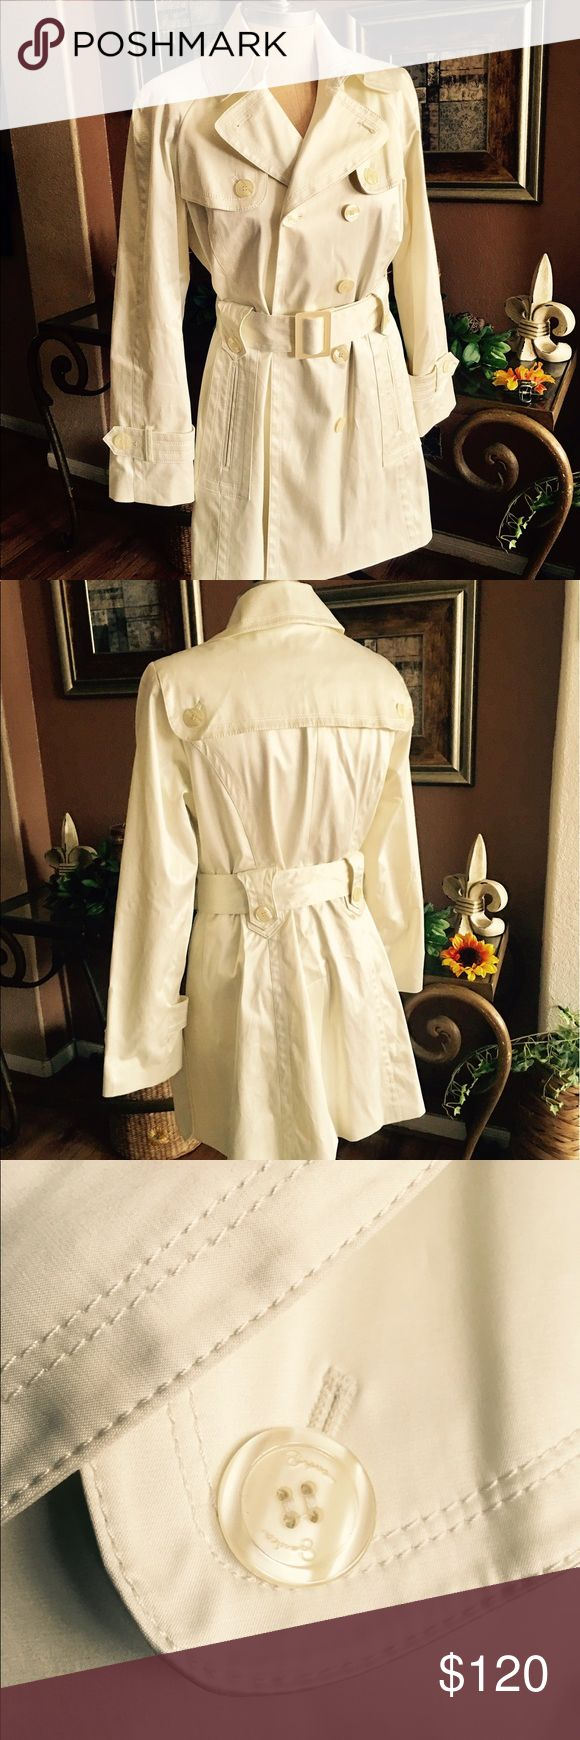 🎉Gorgeous🎉Jessica Simpson Butter Cream Coat Wow!!! What a beautiful buttercream coat! Full satin lining with the Jessica name engraved on the buttons. Excellent shape and nice weight. Very dressy. Fabulous look with any black pant set. Jessica Simpson Jackets & Coats Trench Coats